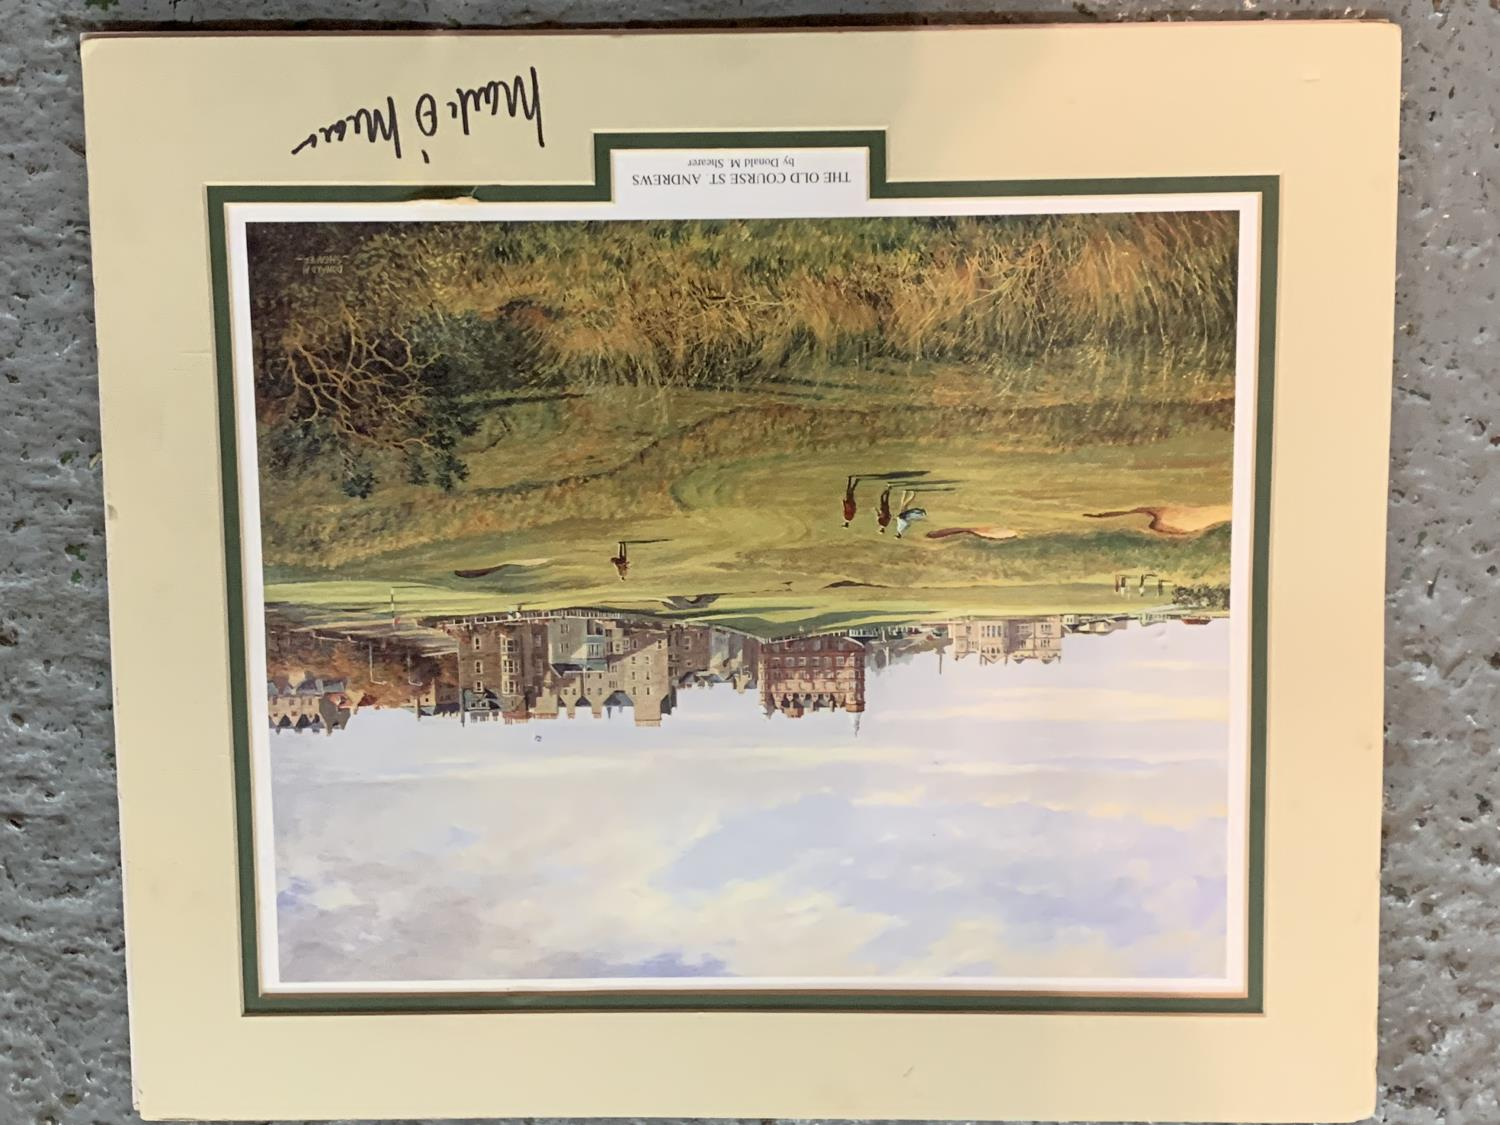 A MOUNTED PRINT OF THE OLD COURSE ST ANDREWS WITH AN INDISTINCT SIGNATURE